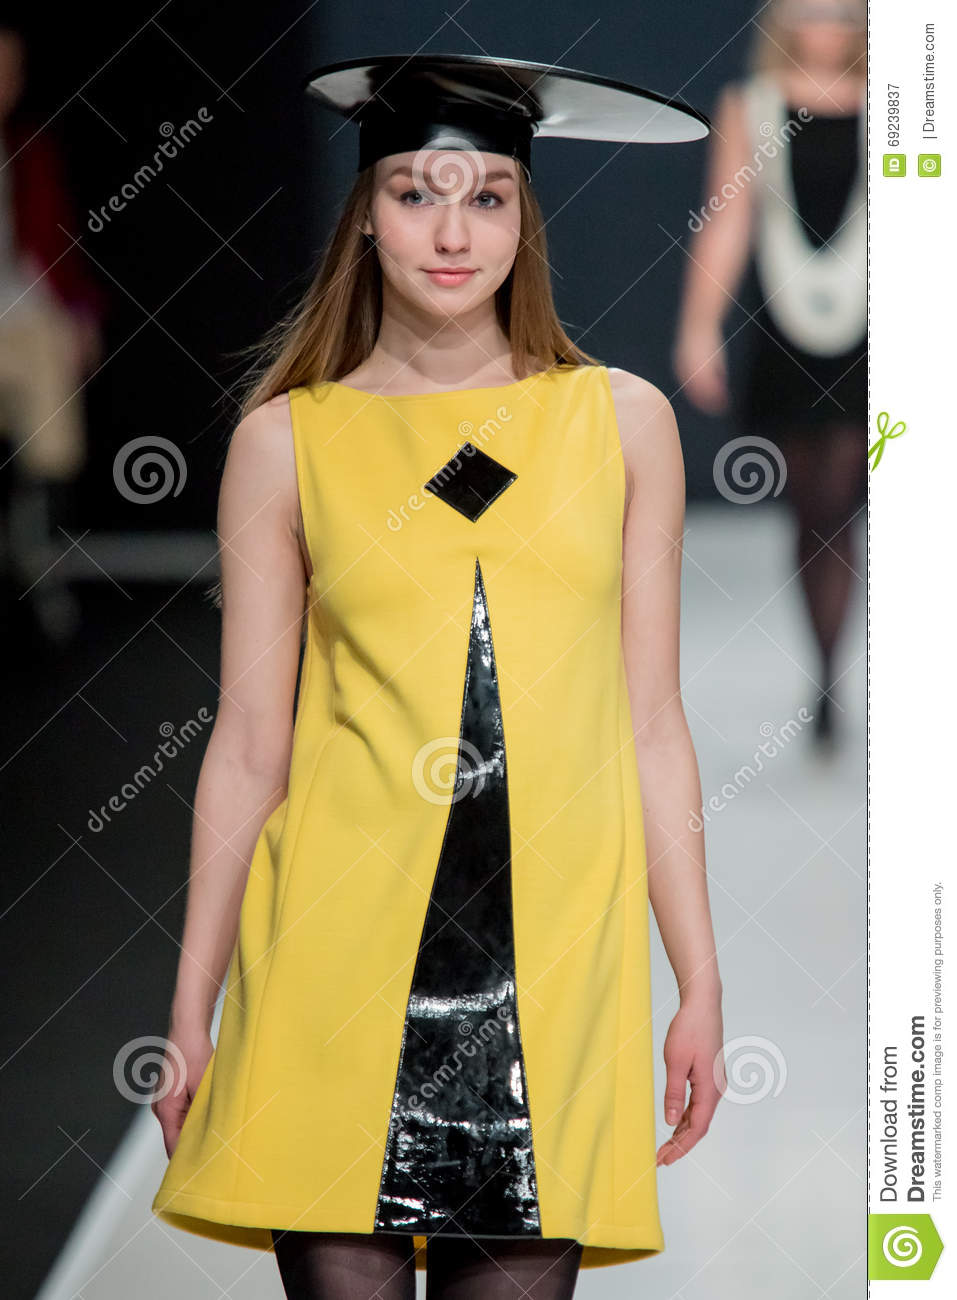 Pierre Cardin will dress the Moscow actors 10/29/2009 41